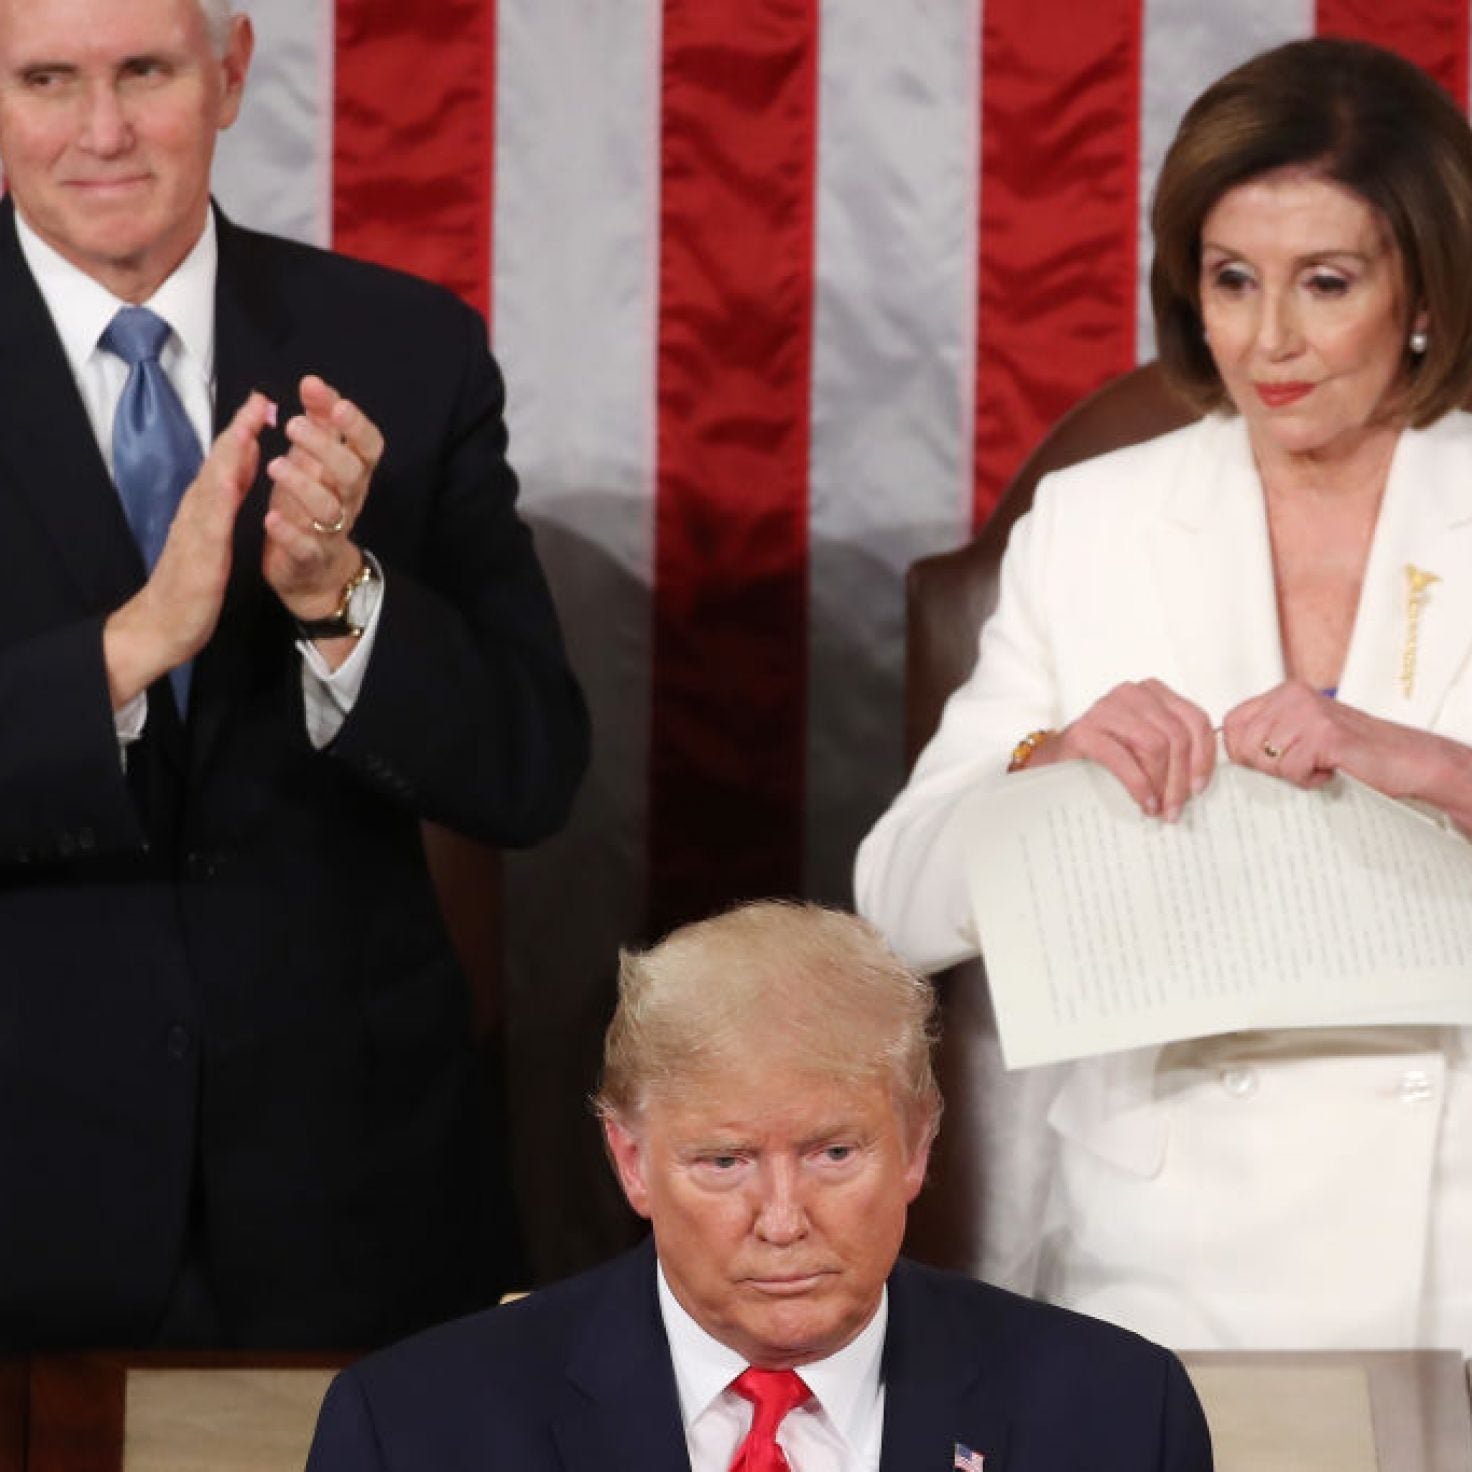 Nancy Pelosi Rips Up Trump's SOTU Speech